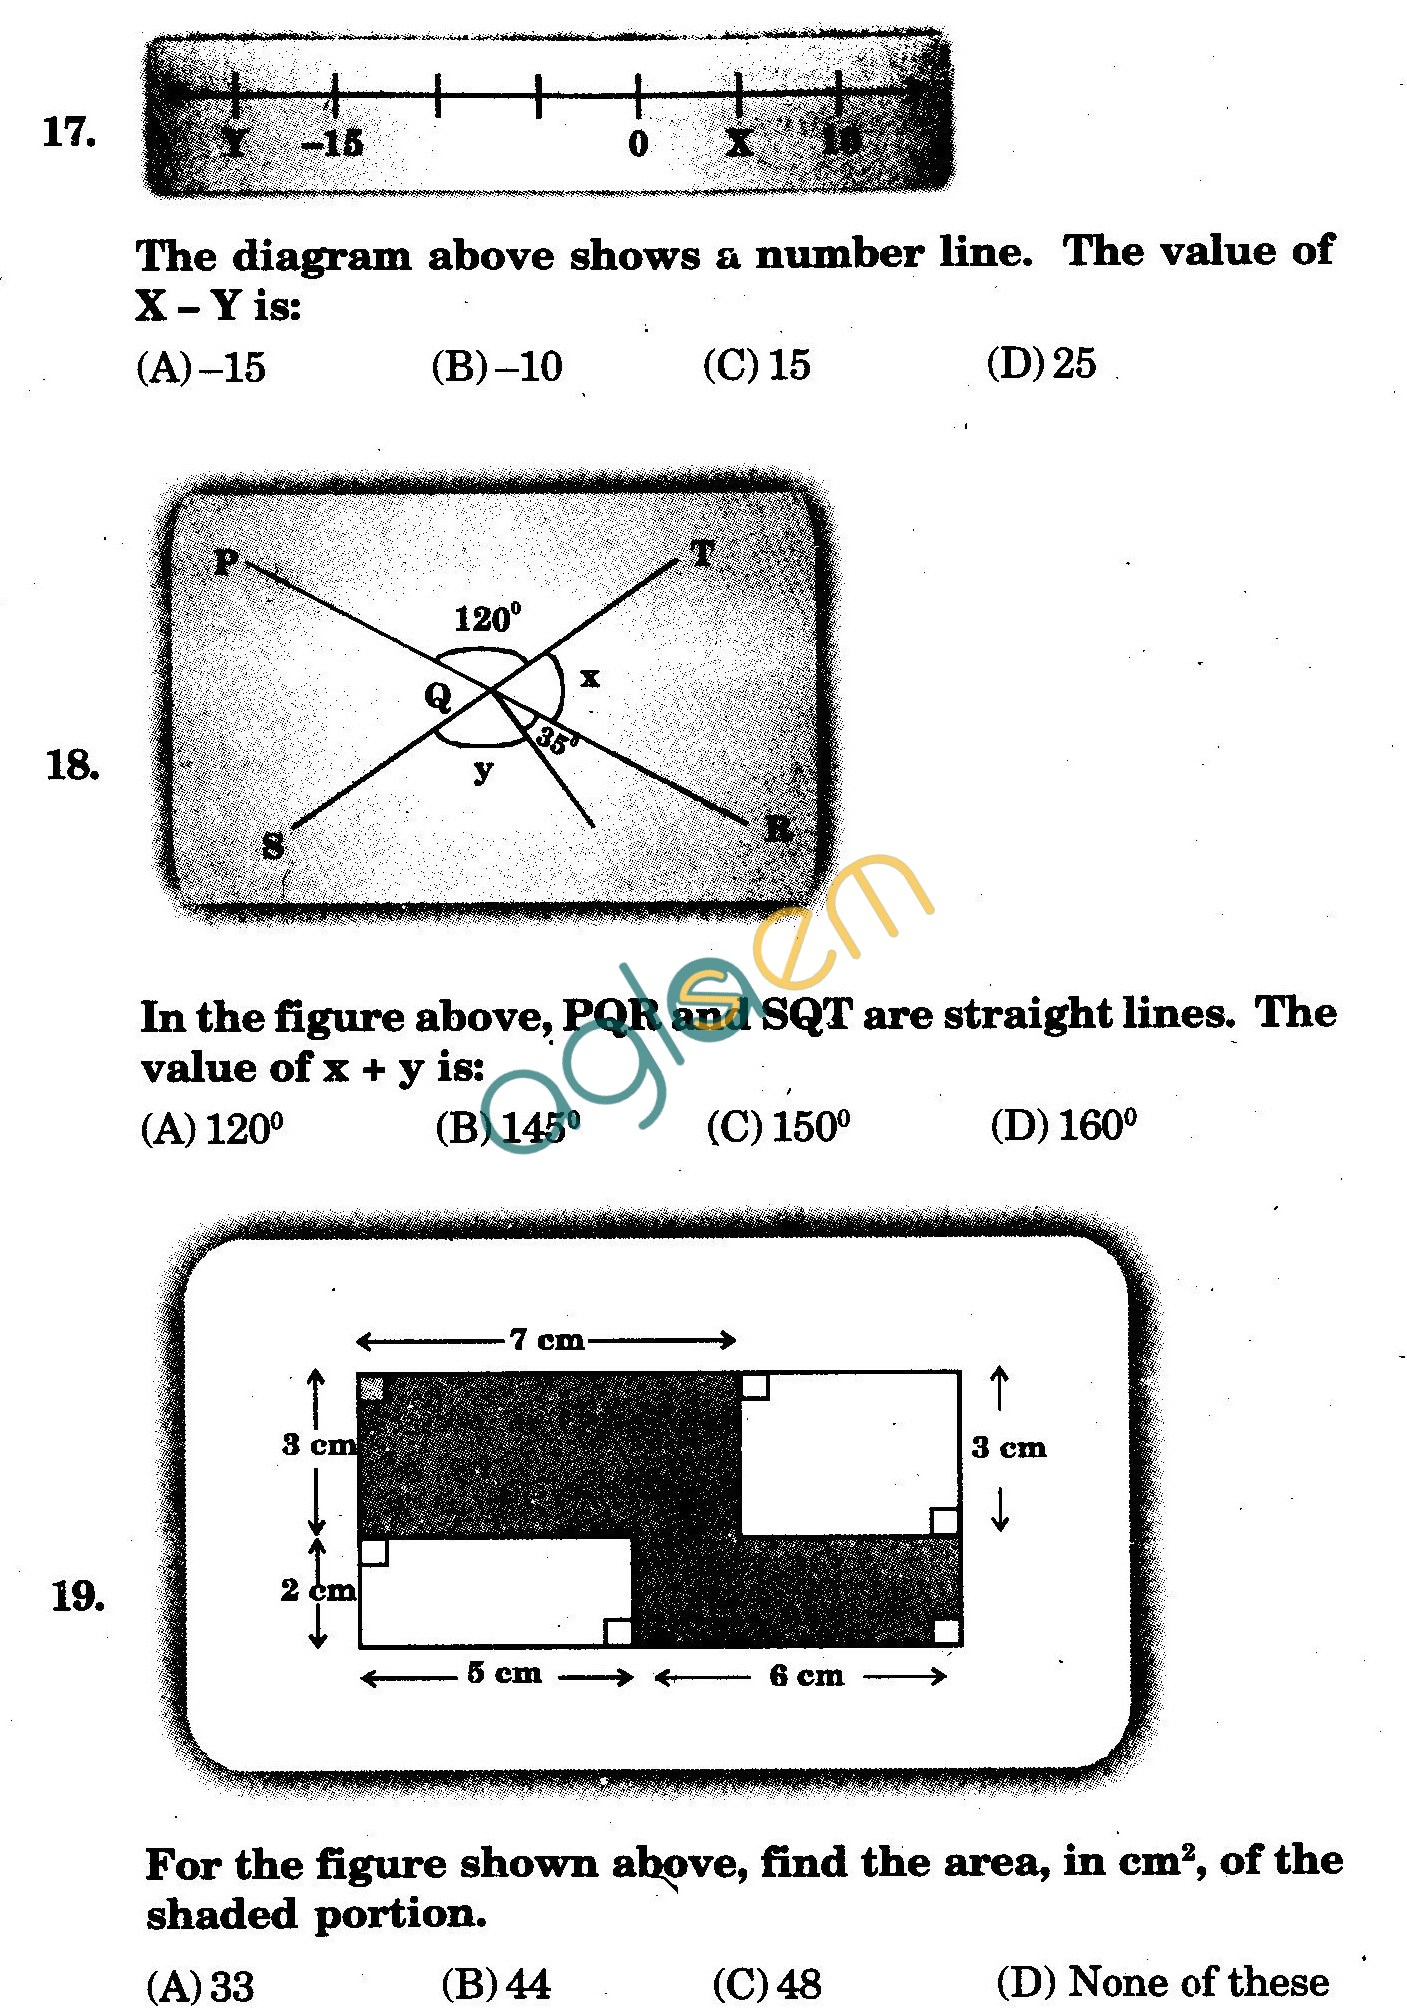 NSTSE 2009 Class VI Question Paper with Answers - Mathematics